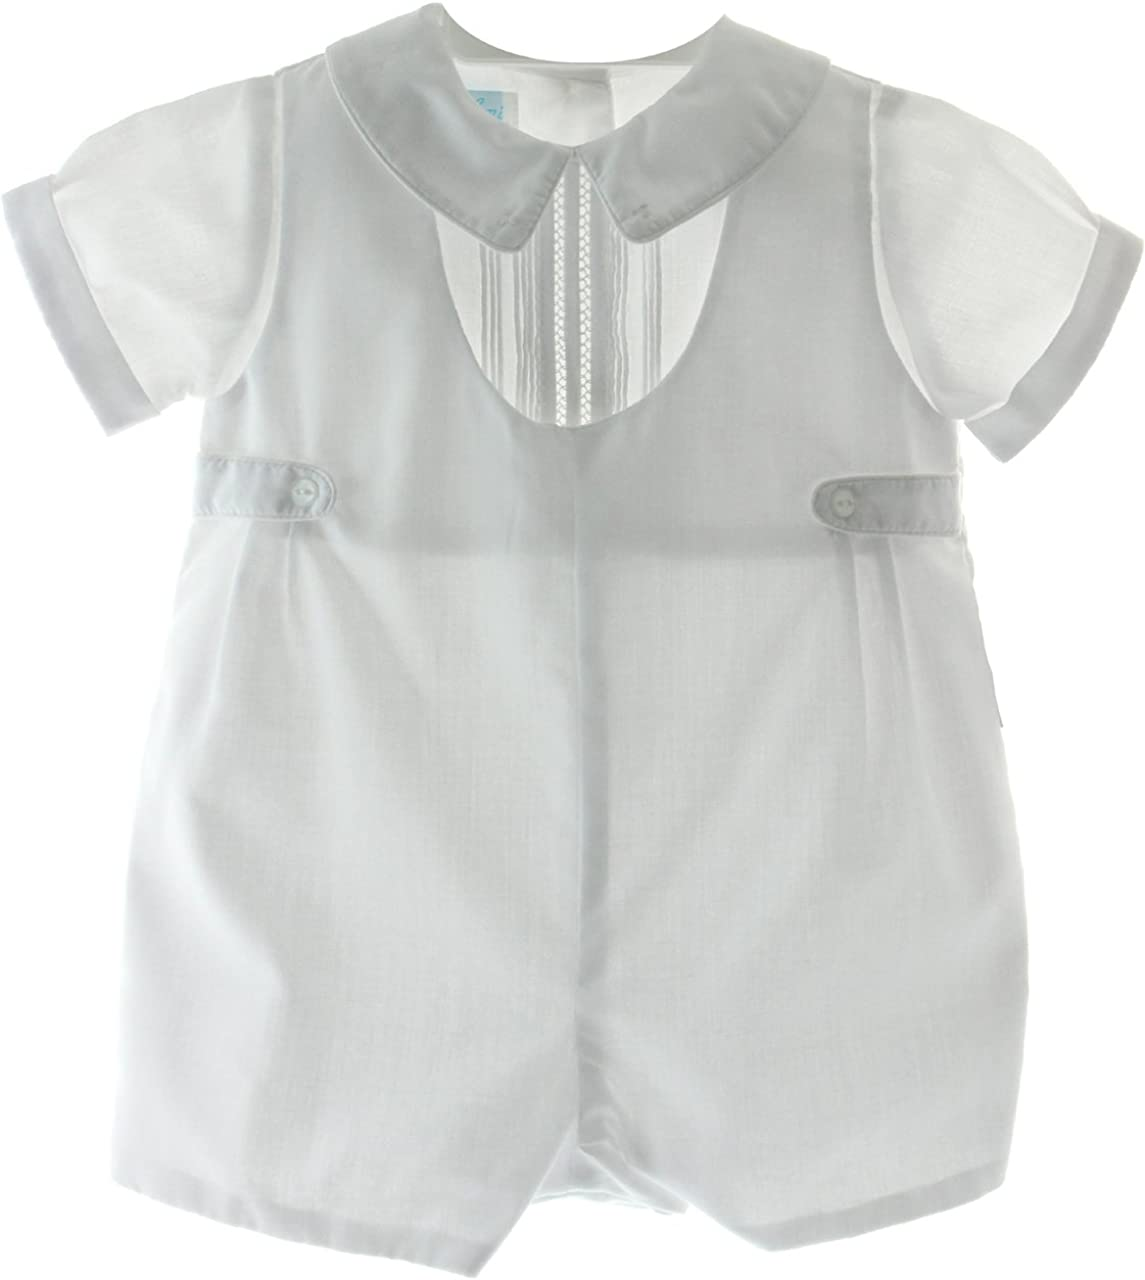 Hiccups Childrens Boutique Boys Dressy Bubble Outfit Peter Pan Collar Christening Romper